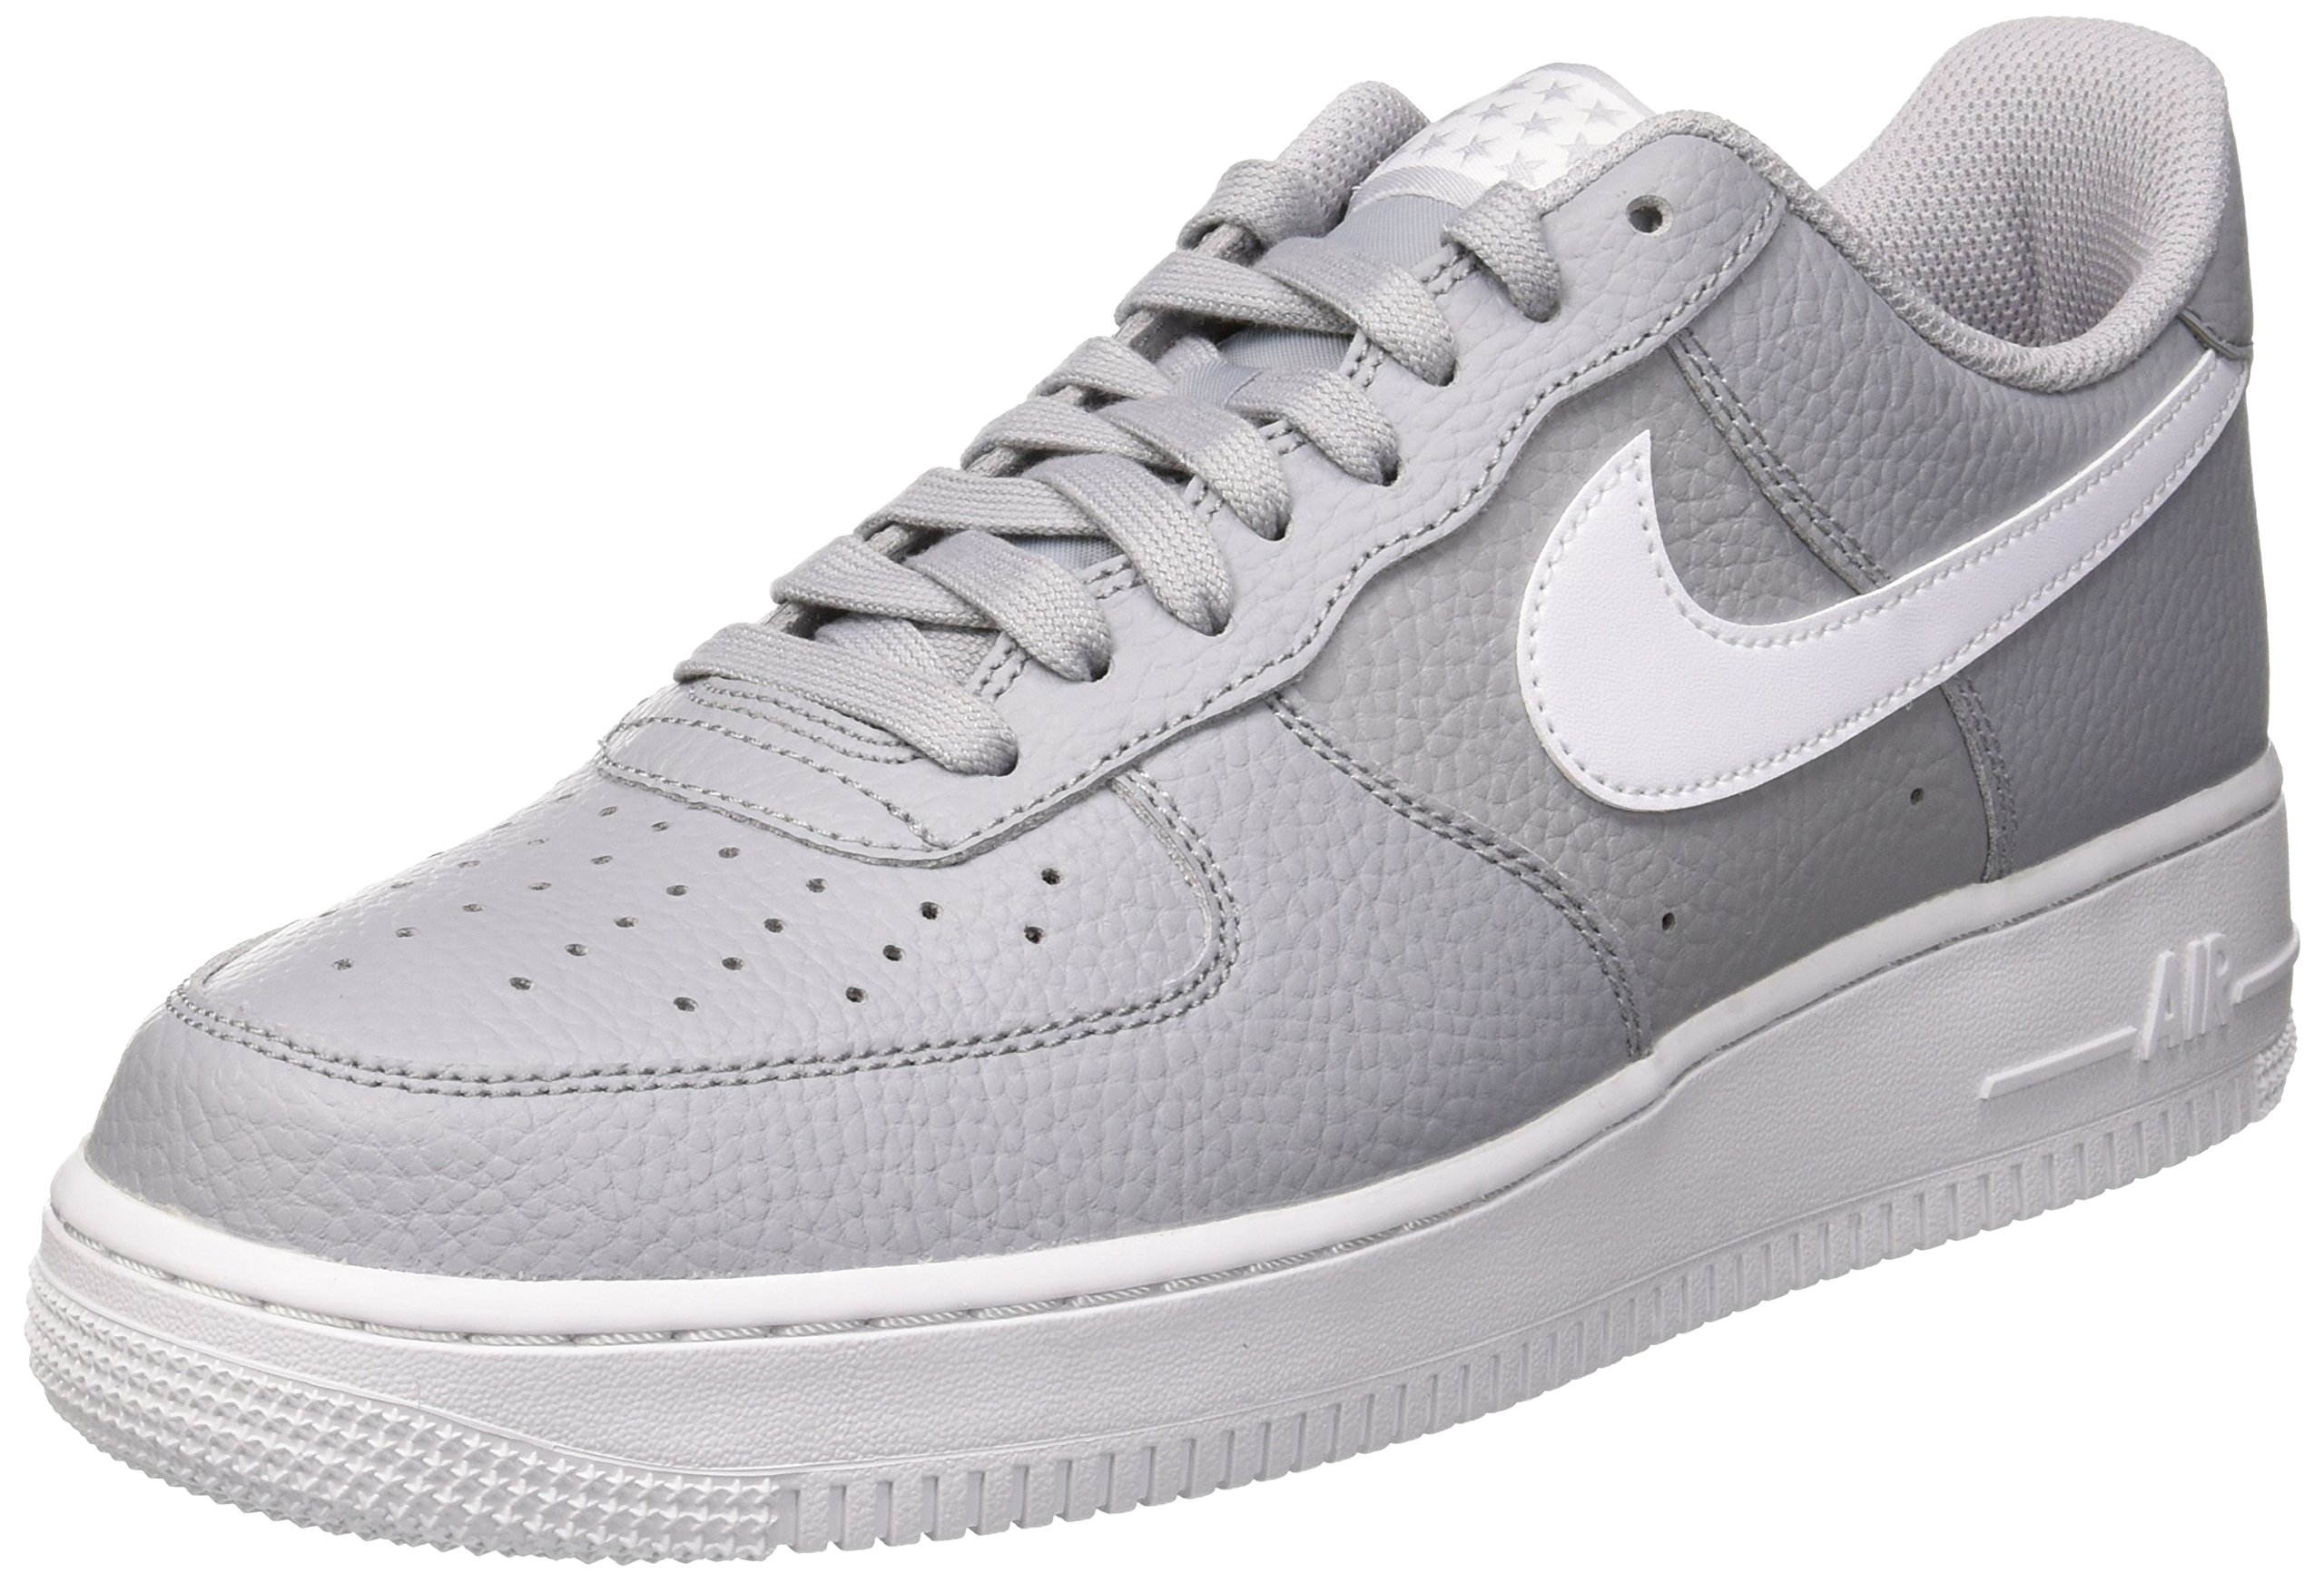 info for ee012 1564d Galleon - Nike Mens Air Force 1 07 Gymnastics Shoes, Black (Wolf Grey White 013), 7.5 UK 7.5 UK